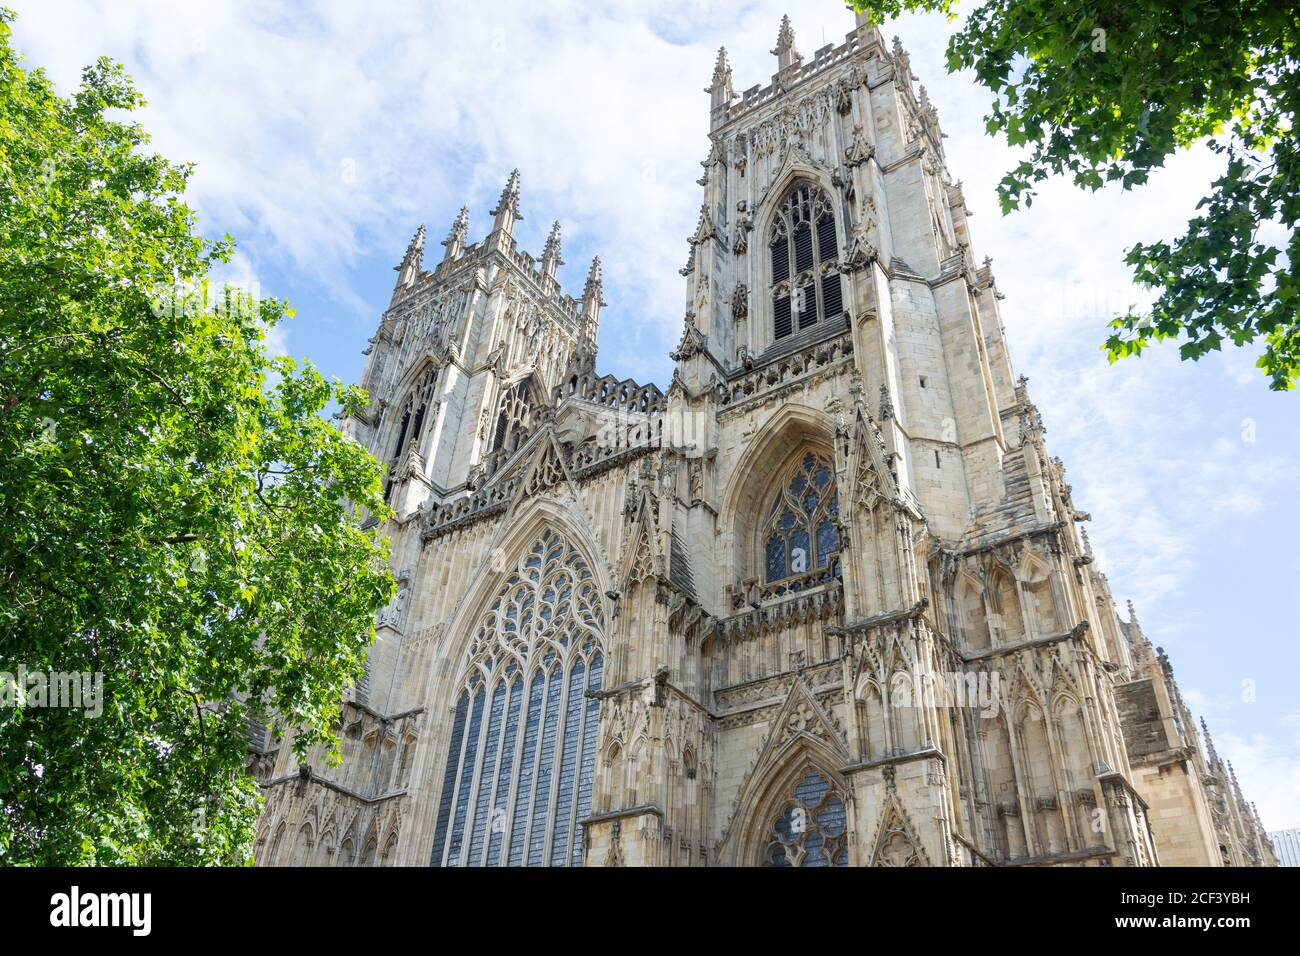 West Towers, York Minster, Precentor's court, York, North Yorkshire, Angleterre, Royaume-Uni Banque D'Images